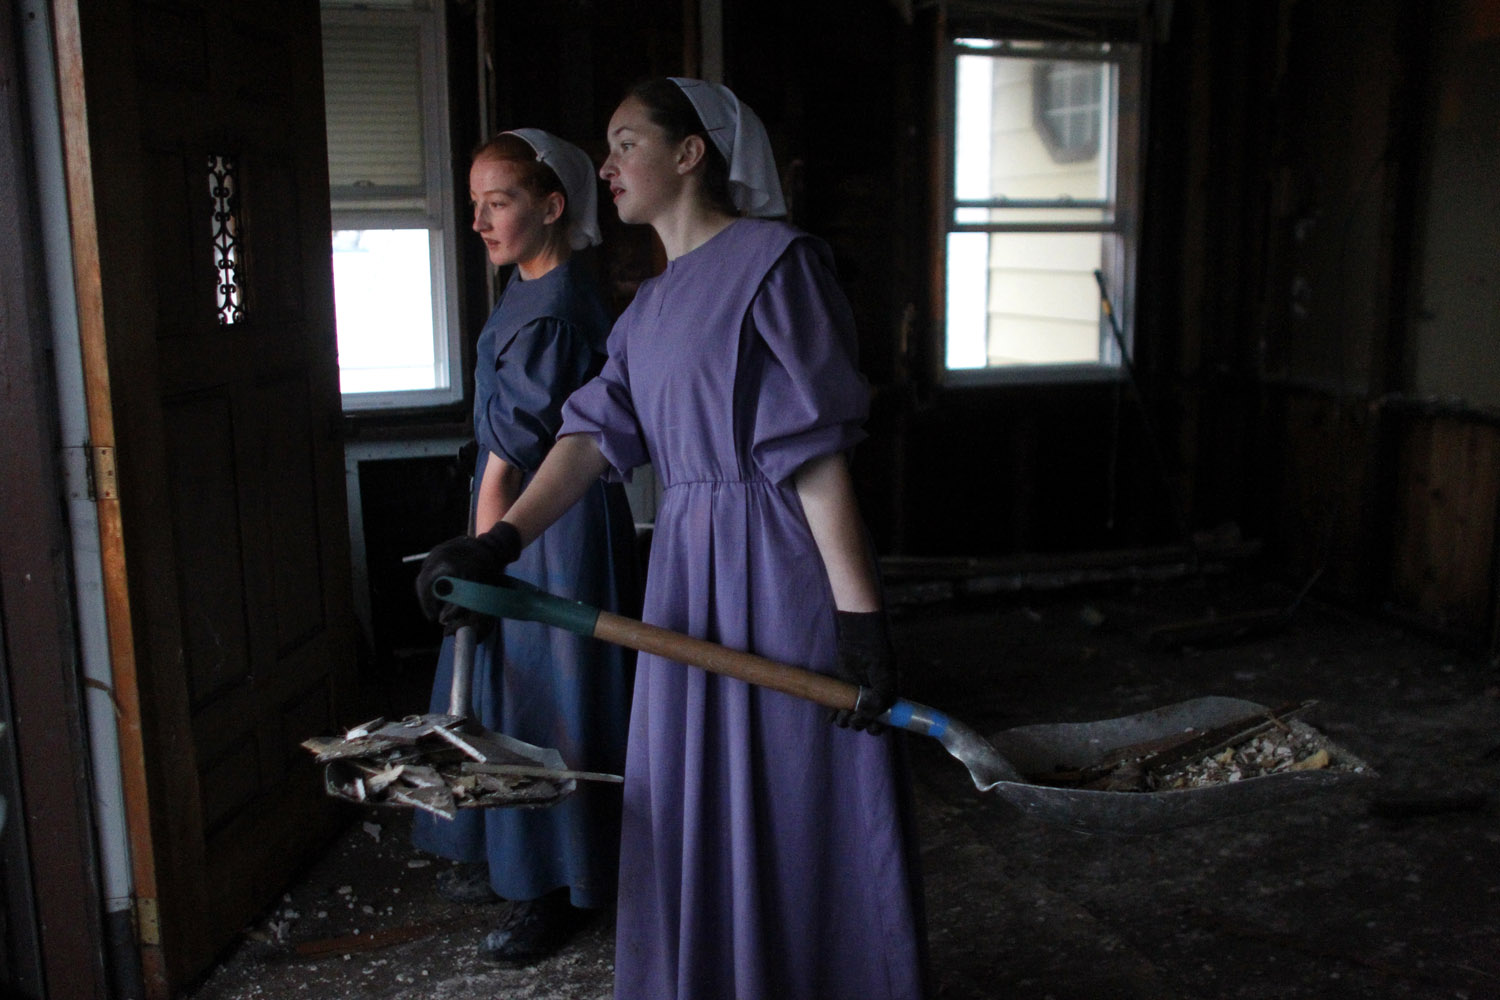 Amish women from Greenville, P.A., clear out a house on 2nd Street in Union Beach,                               N.J., Nov. 19, 2012